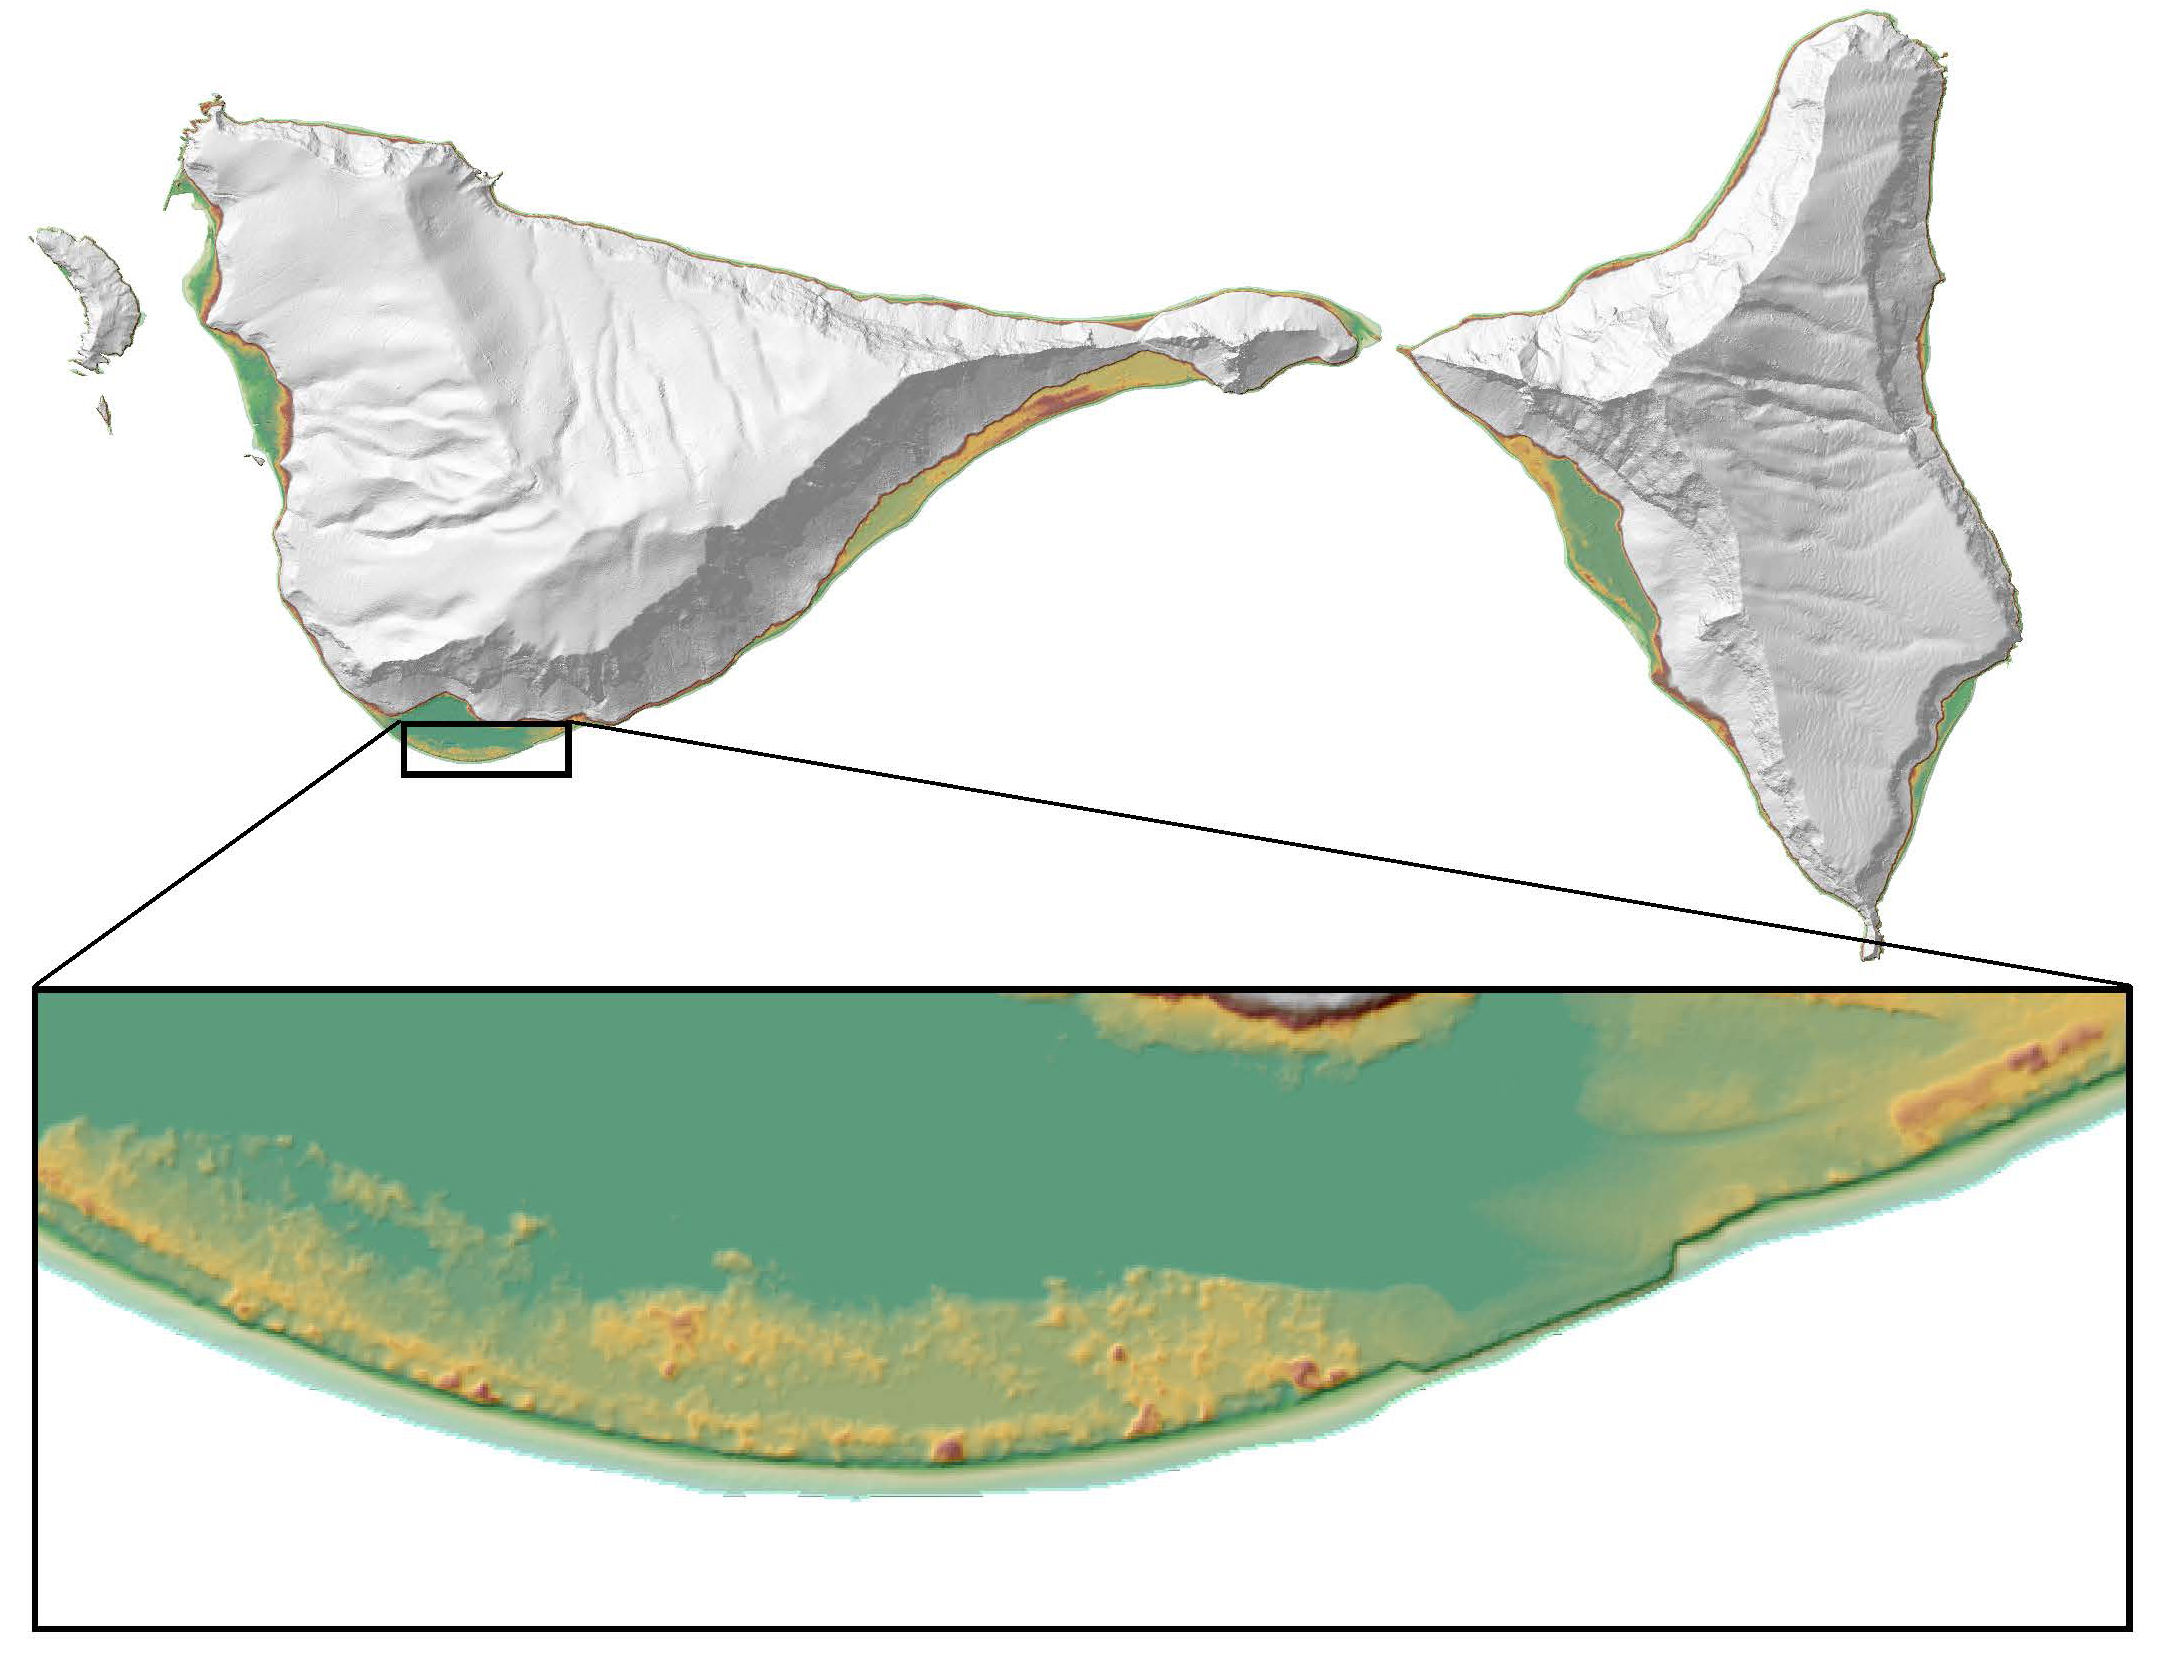 High-resolution lidar data of Ofu and Olosega islands, American Samoa